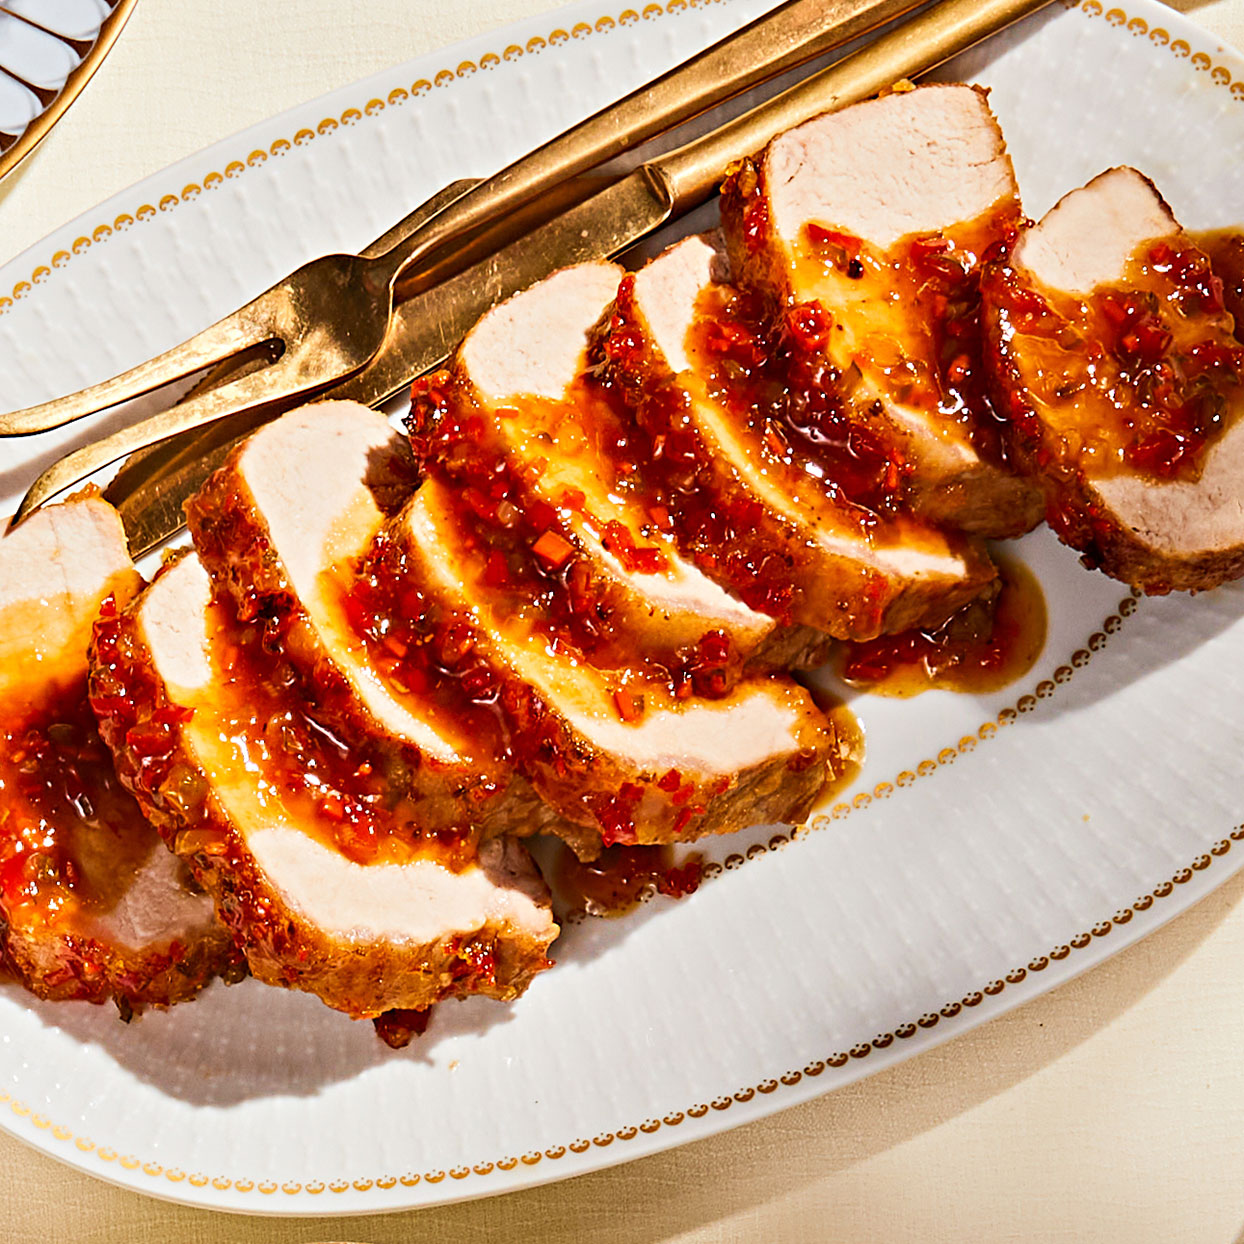 Pork Loin Roast with Pepper Jelly Glaze